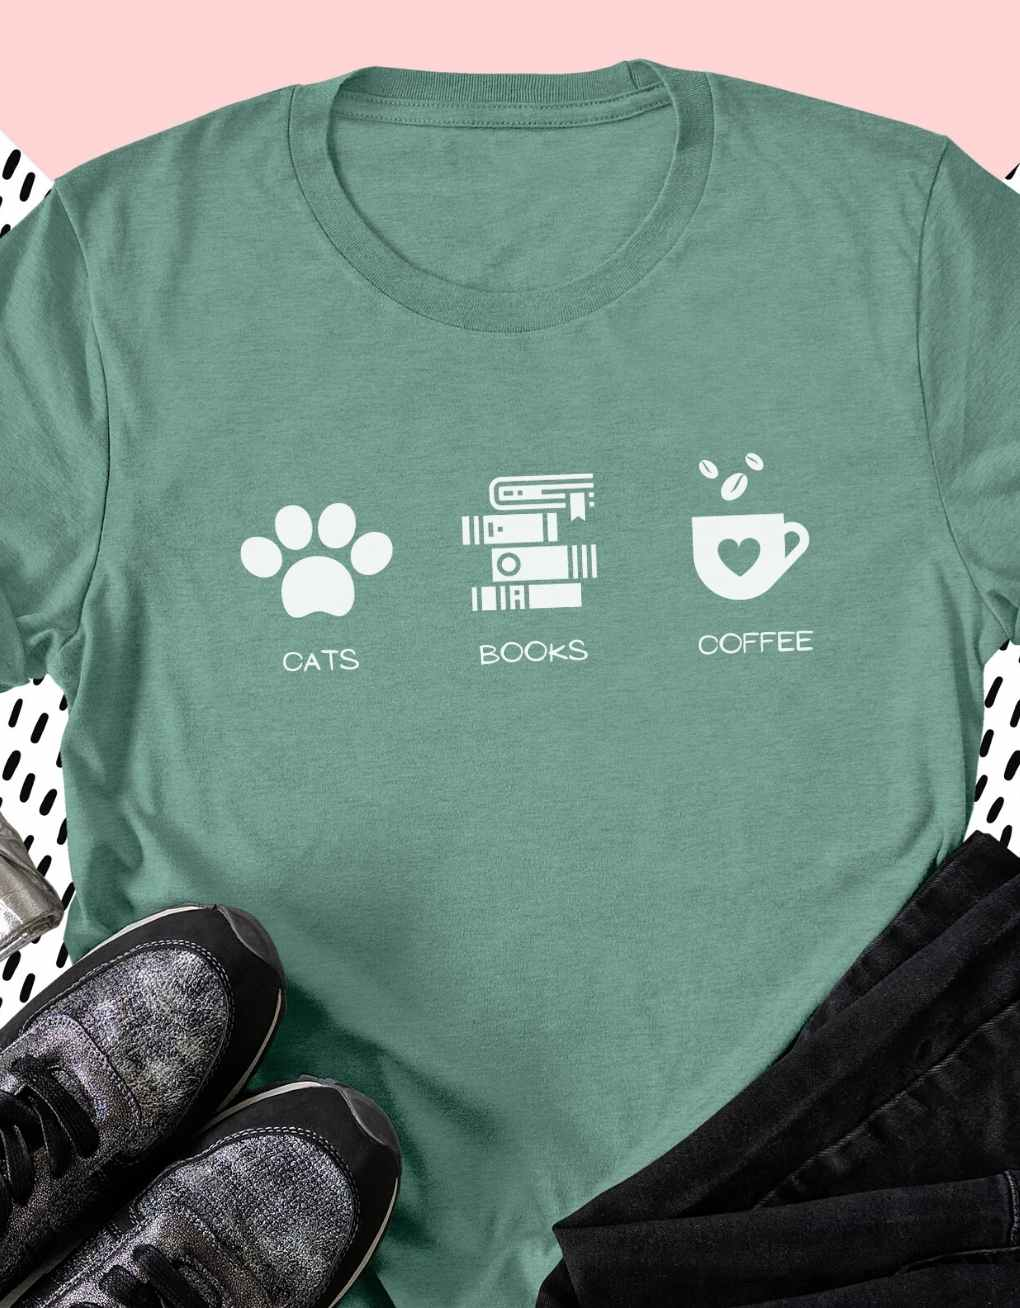 Cats Books Coffee - Luxury Unisex Fit T-Shirt